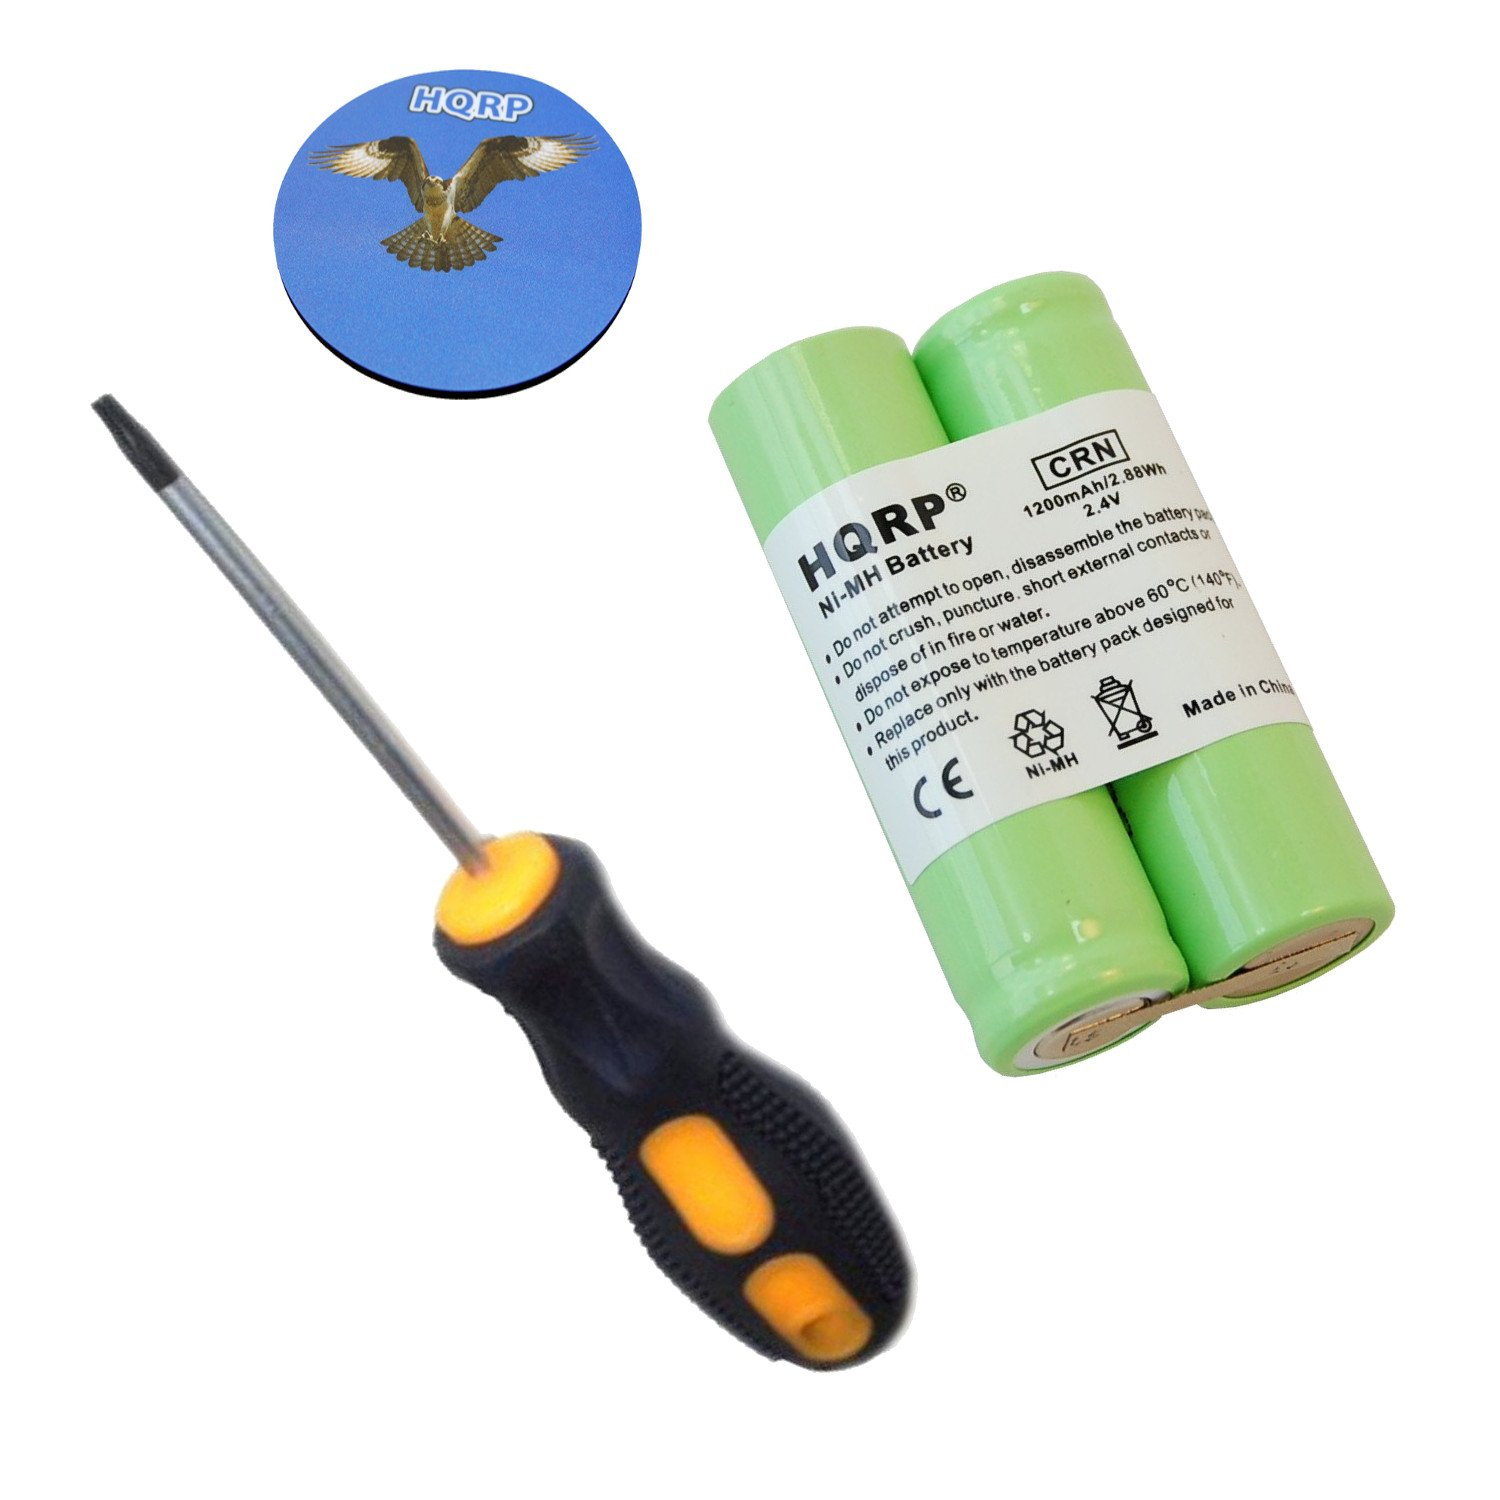 HQRP Battery fits Philips Norelco 6886XLD 6887XL 7610X 7616X 7617X 7735X Razor/Shaver plus Screwdriver and Coaster 884667402091214